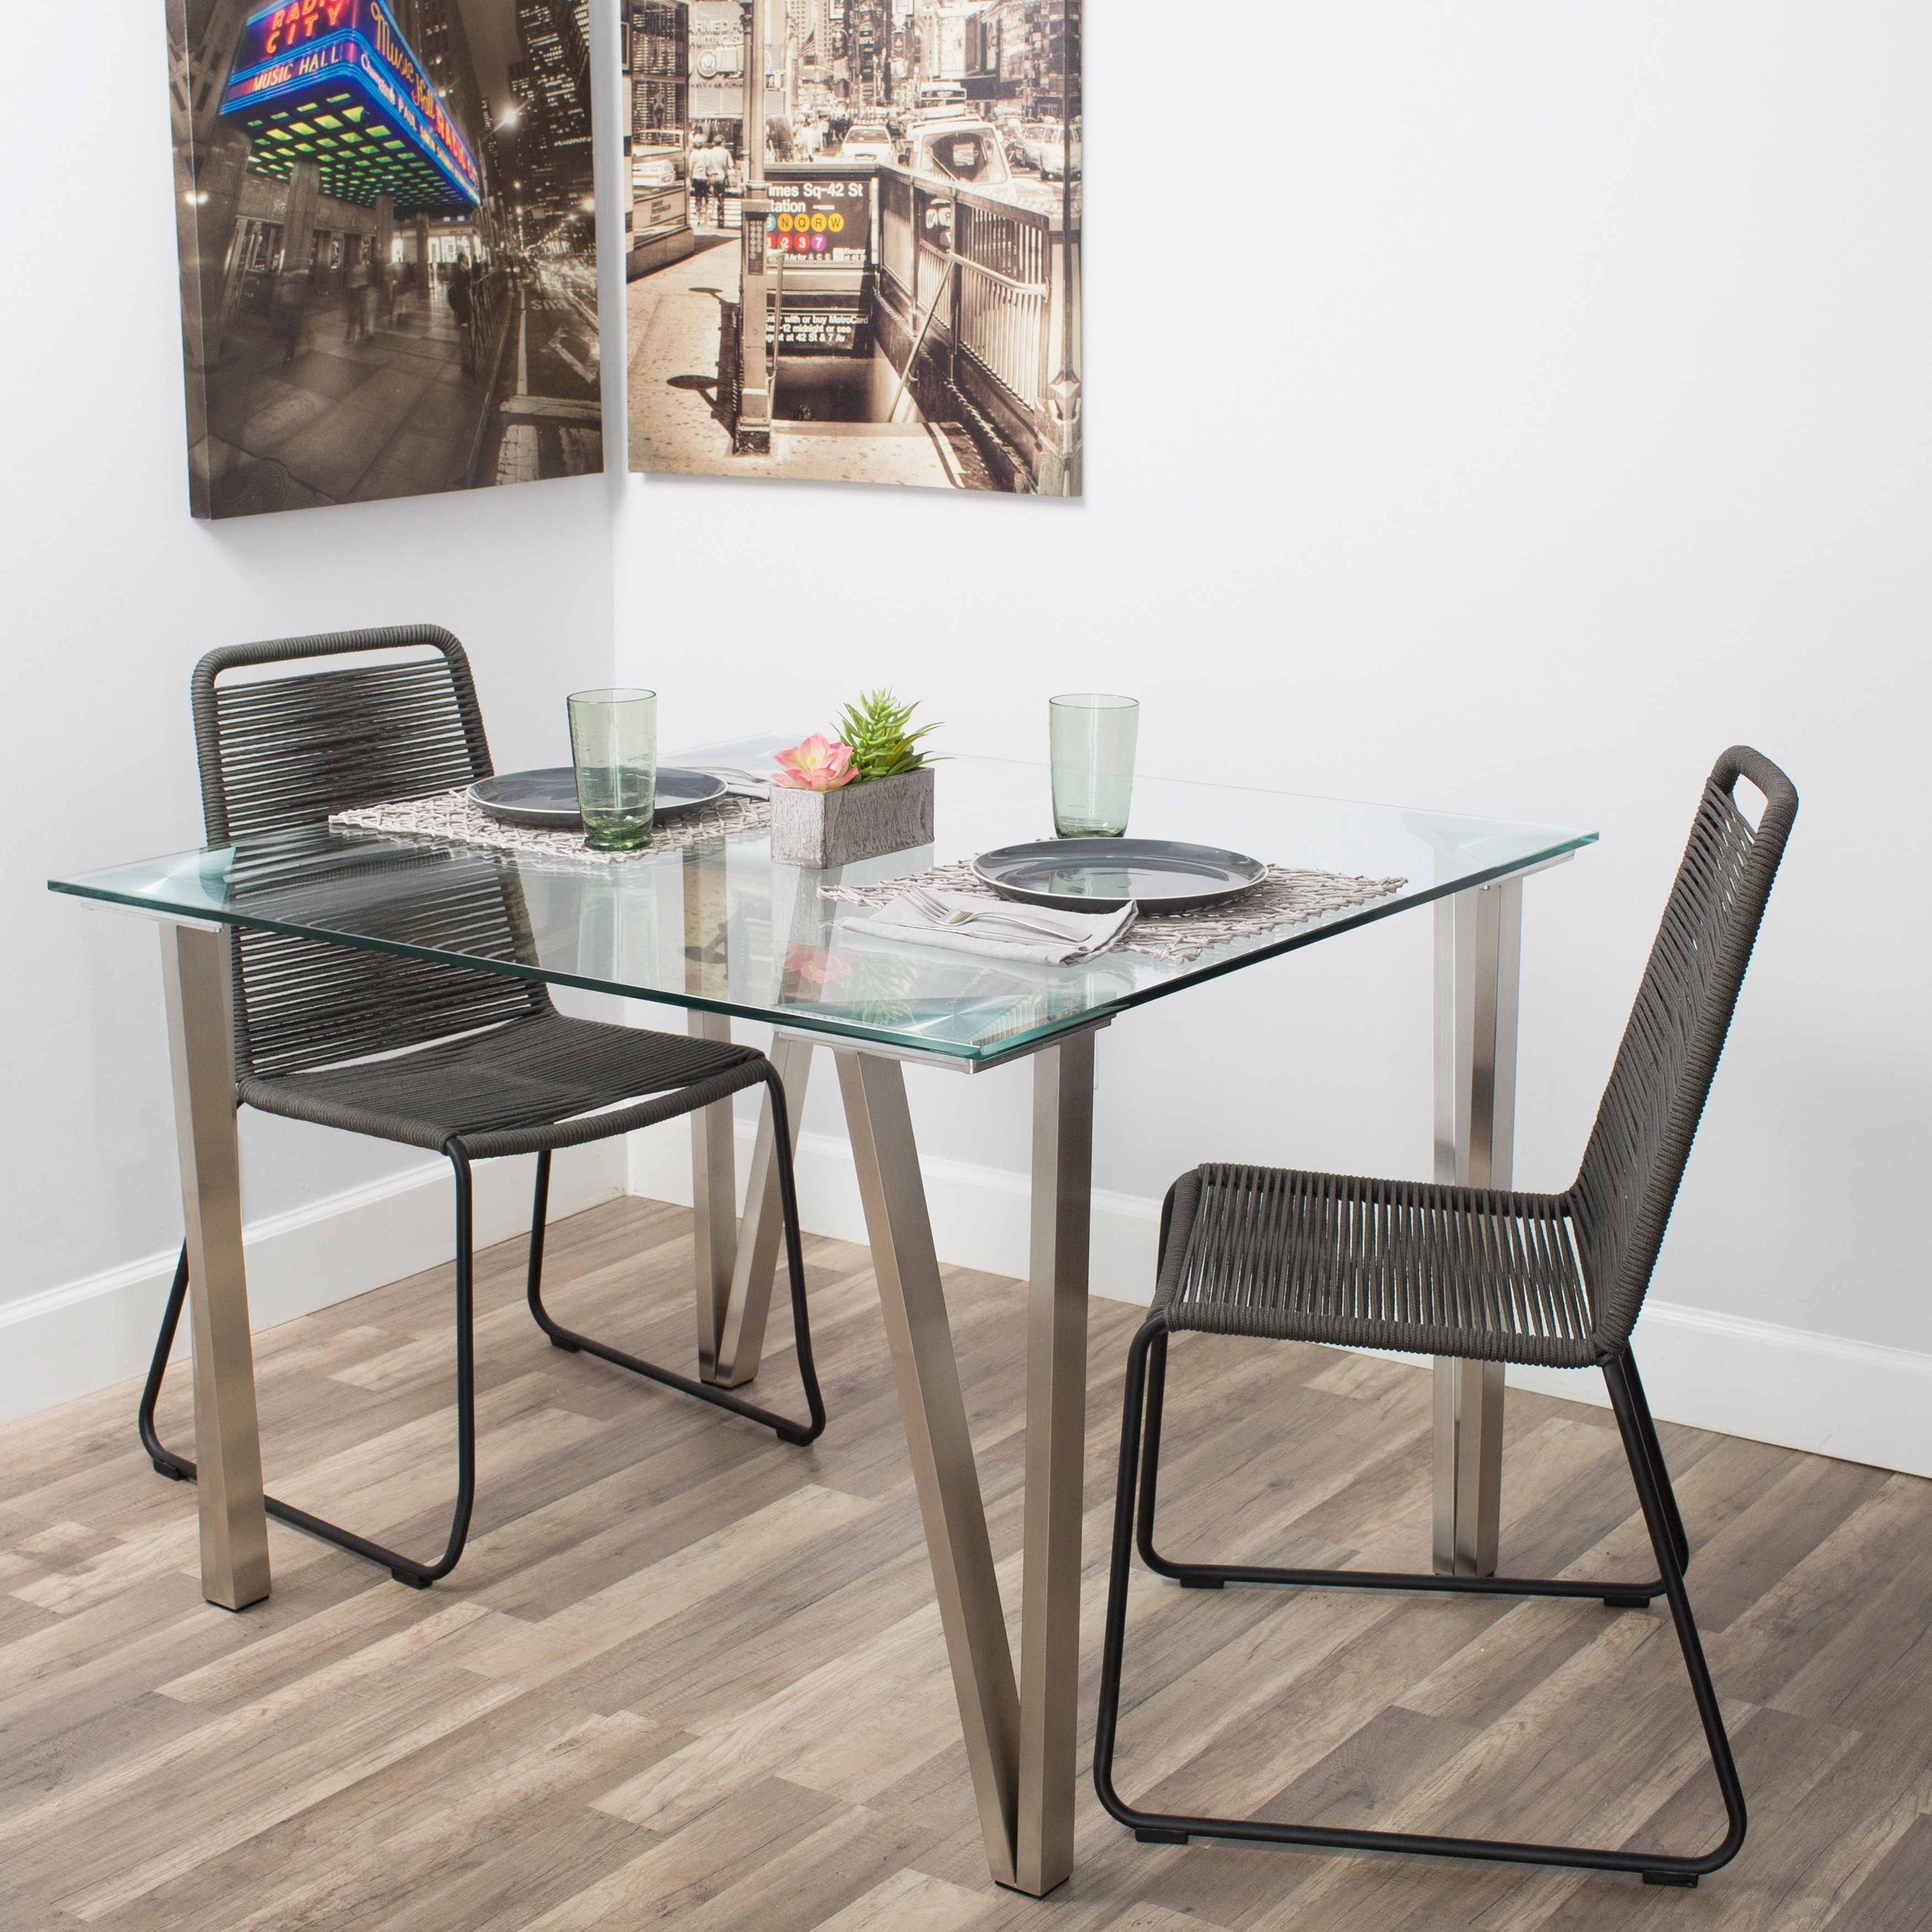 42-inch Brushed Stainless Steel Hairpin Legs Tempered Glass Square Dining  Table - Free Shipping Today - Overstock.com - 20757380